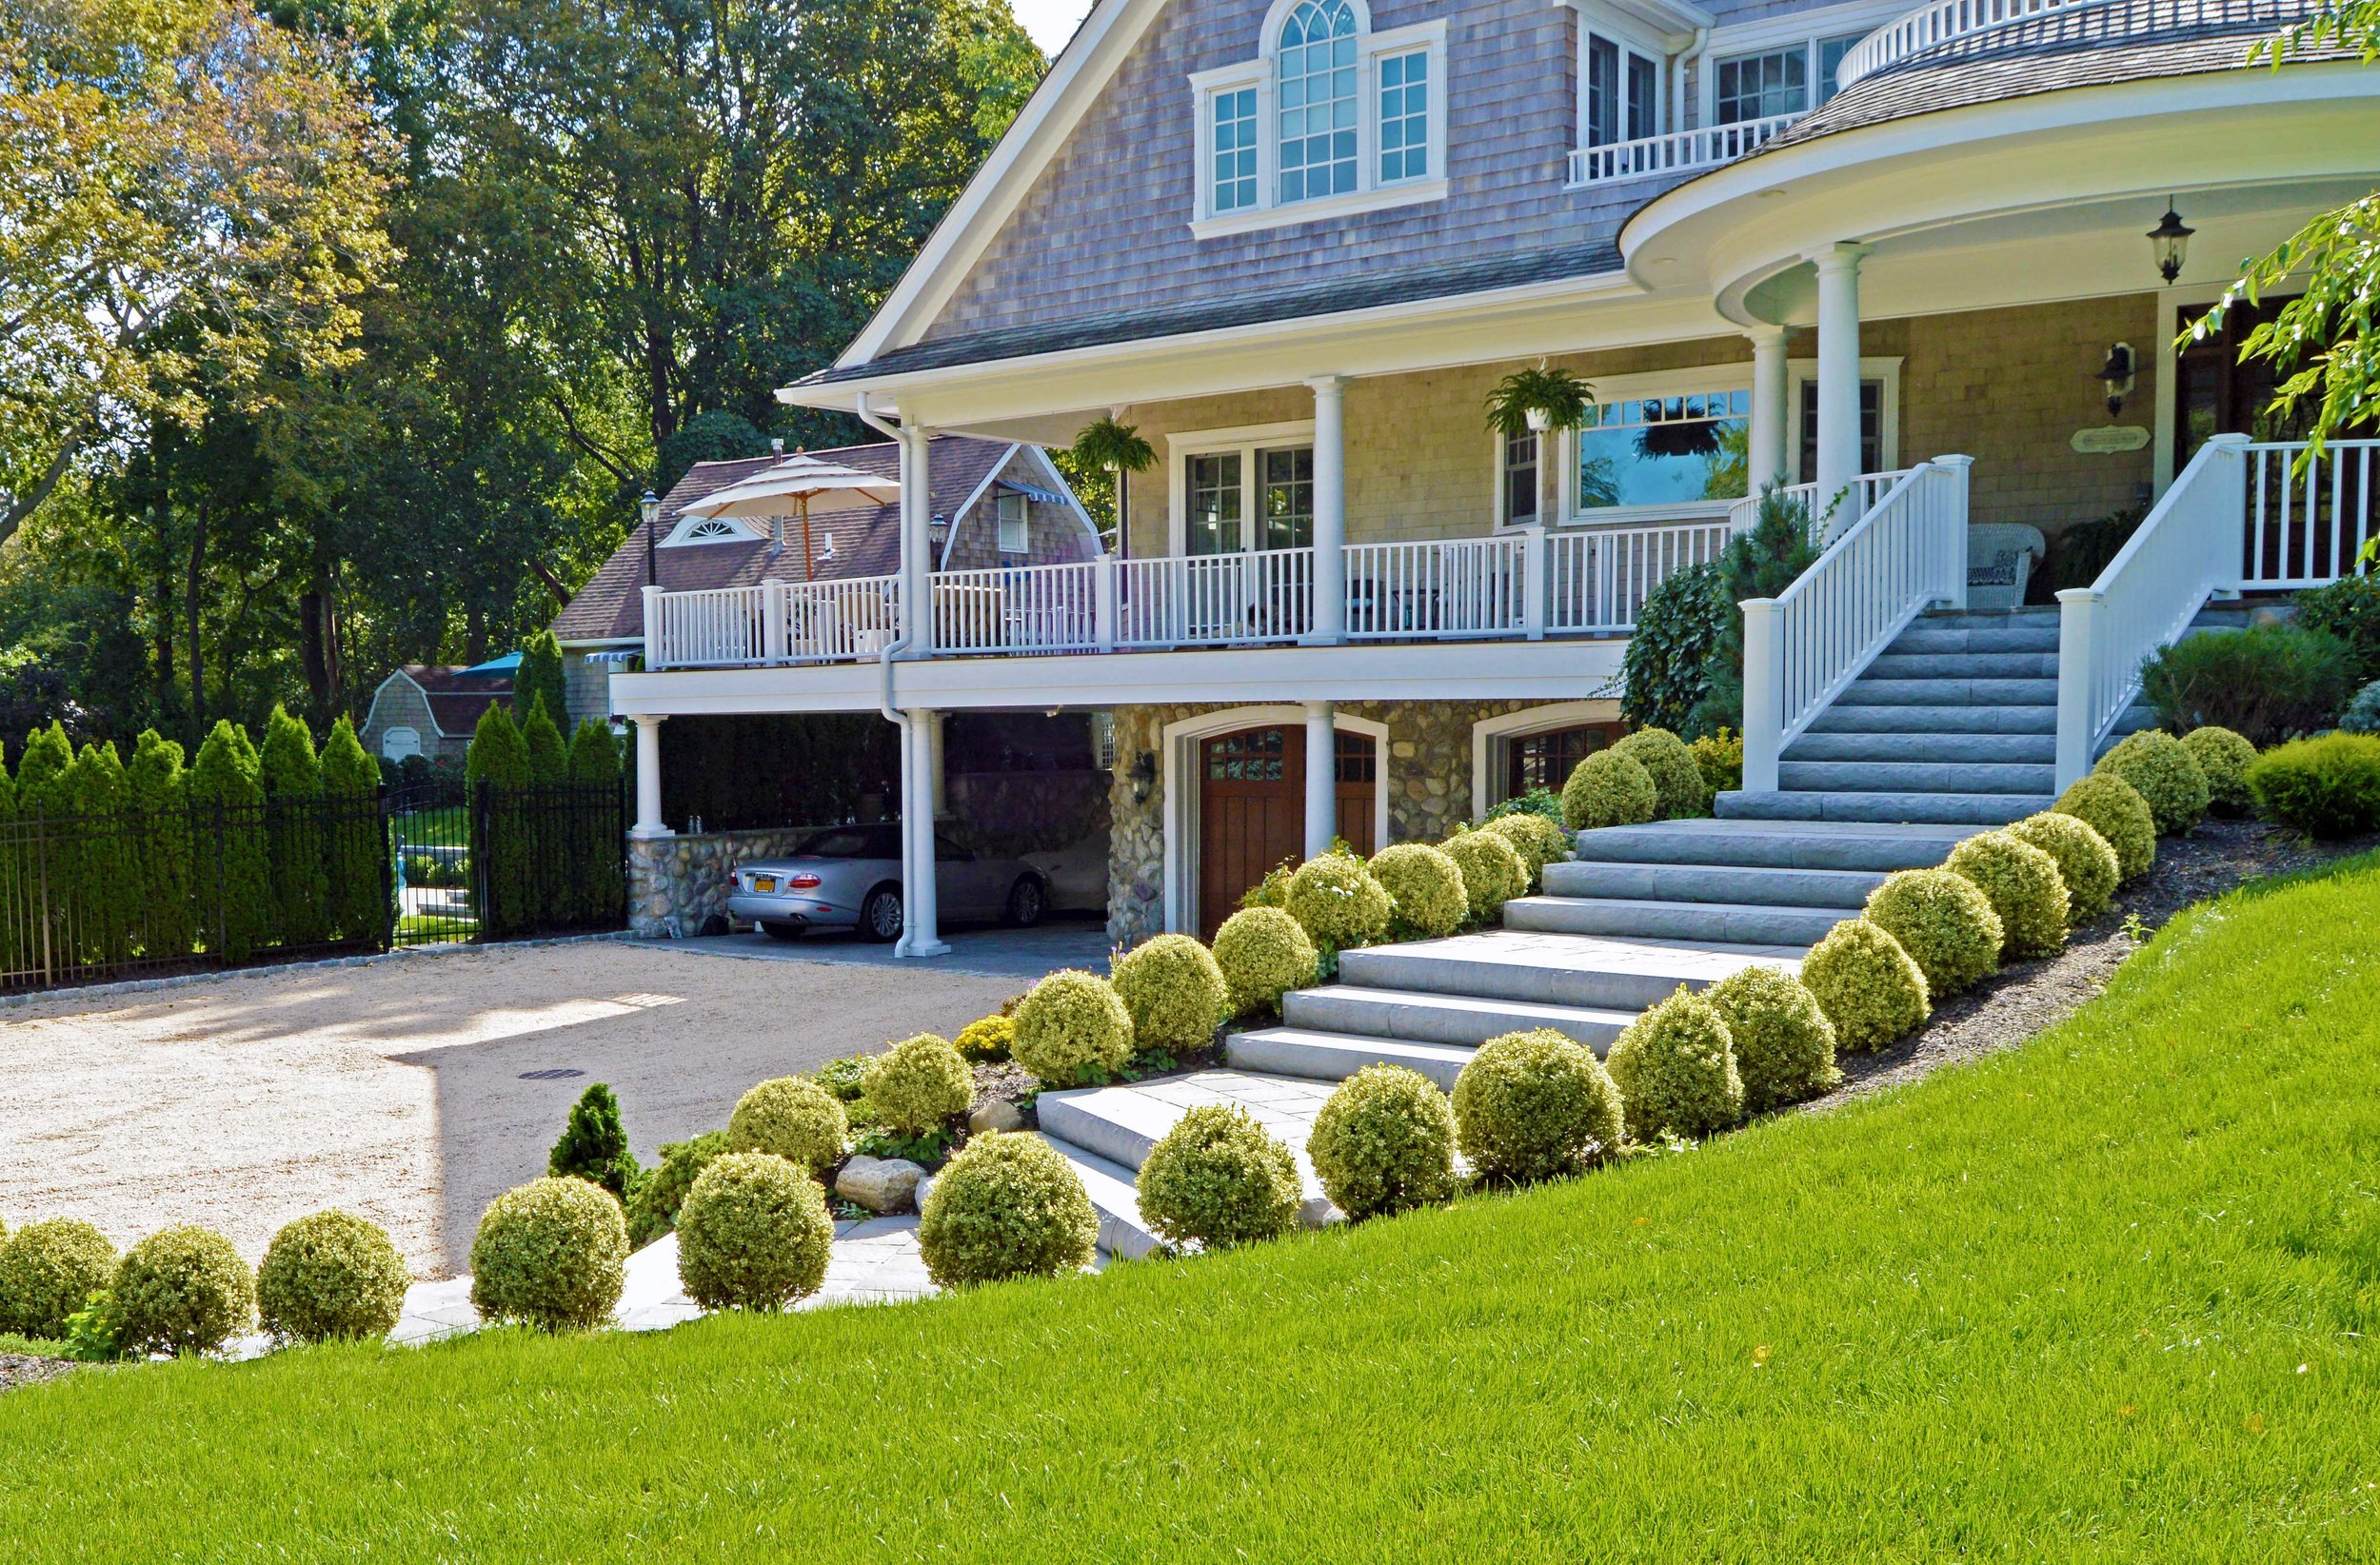 Top landscape architecture in Hicksville, New York